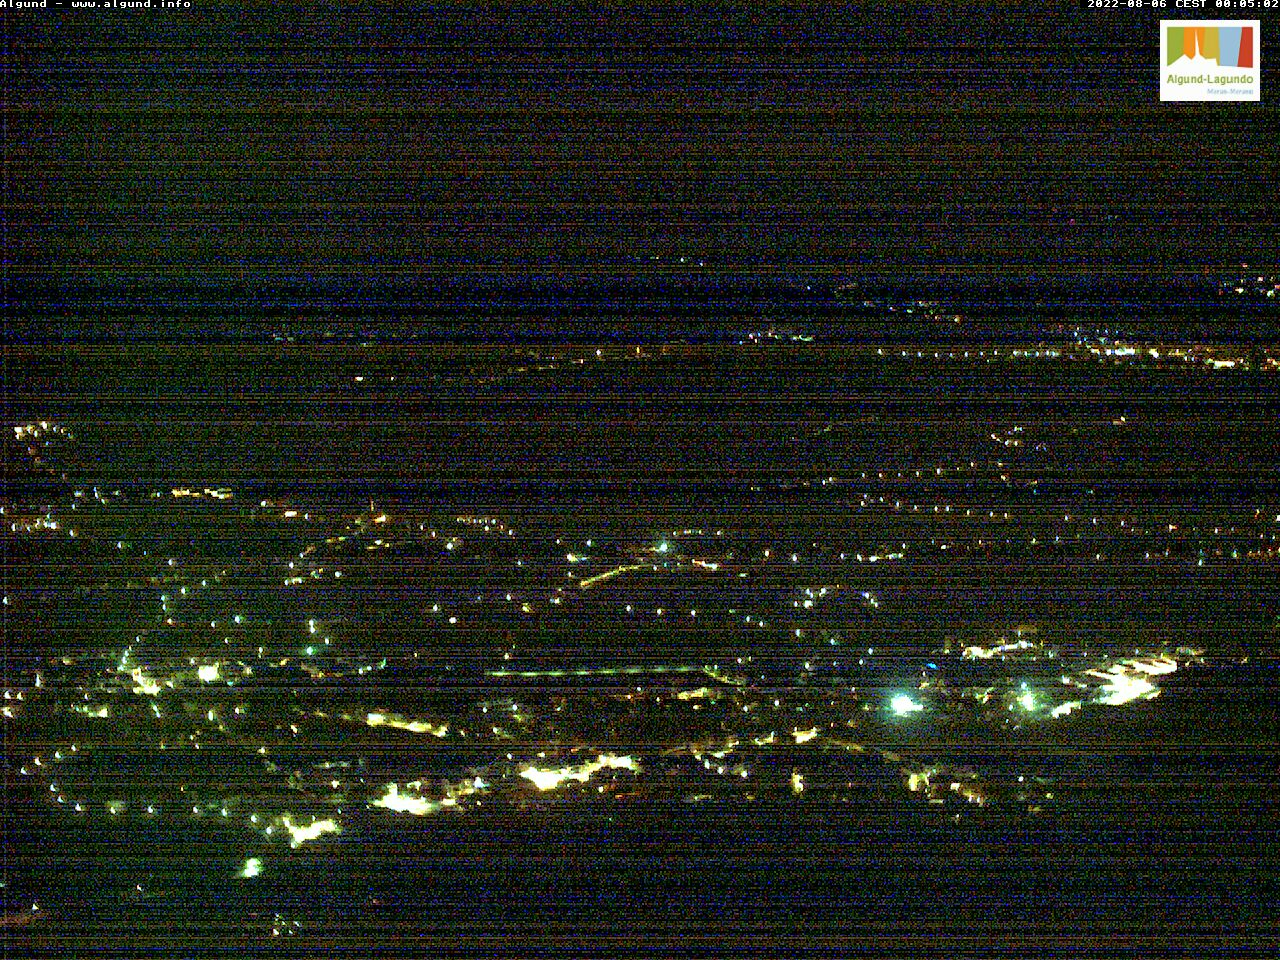 Algund Webcam 1